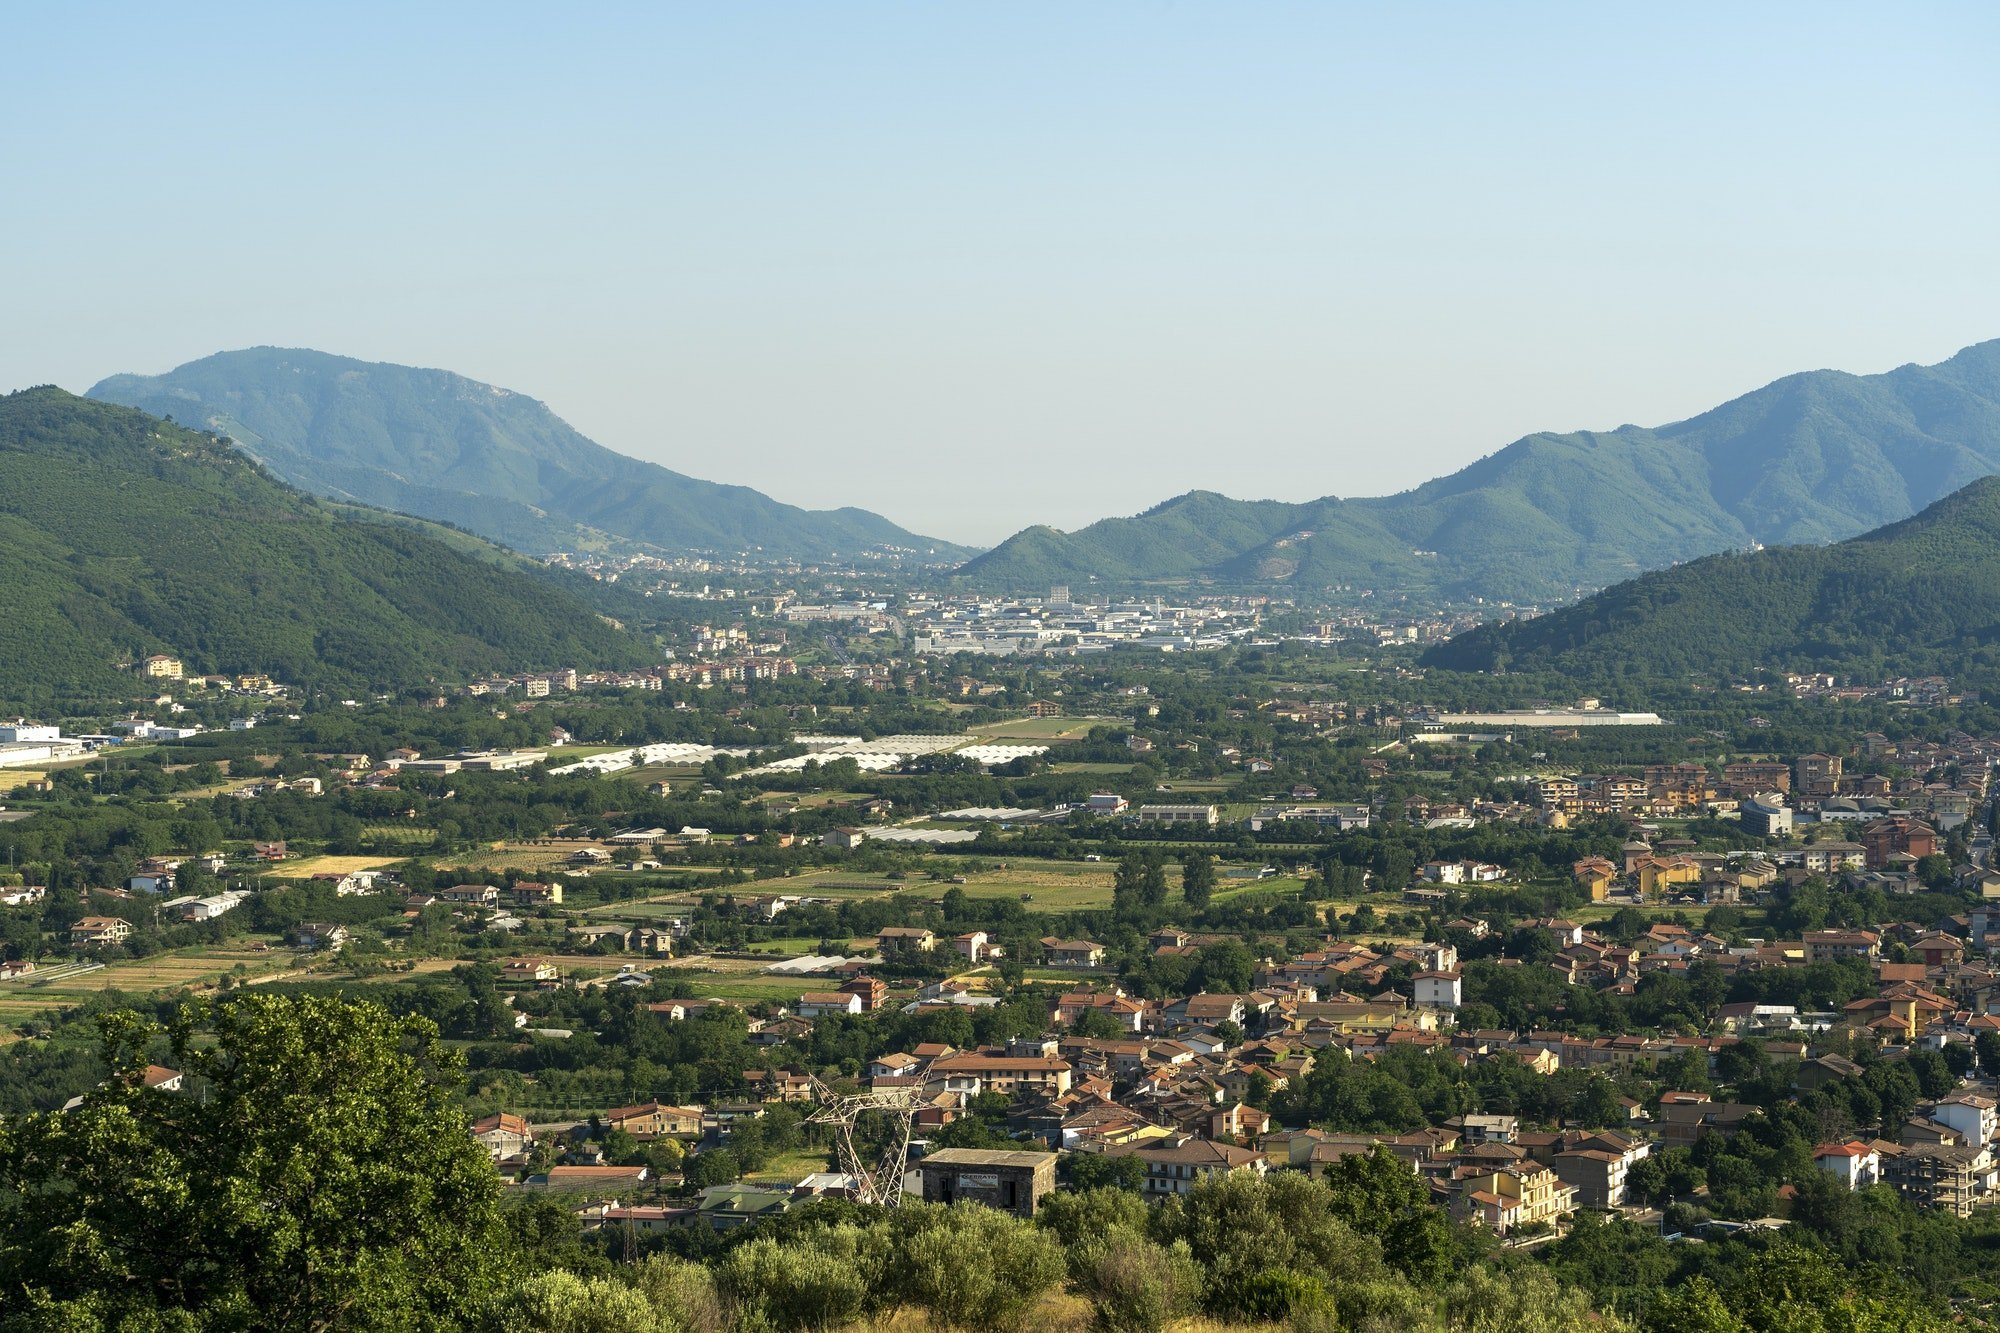 Summer landscape in Irpinia, Southern Italy.